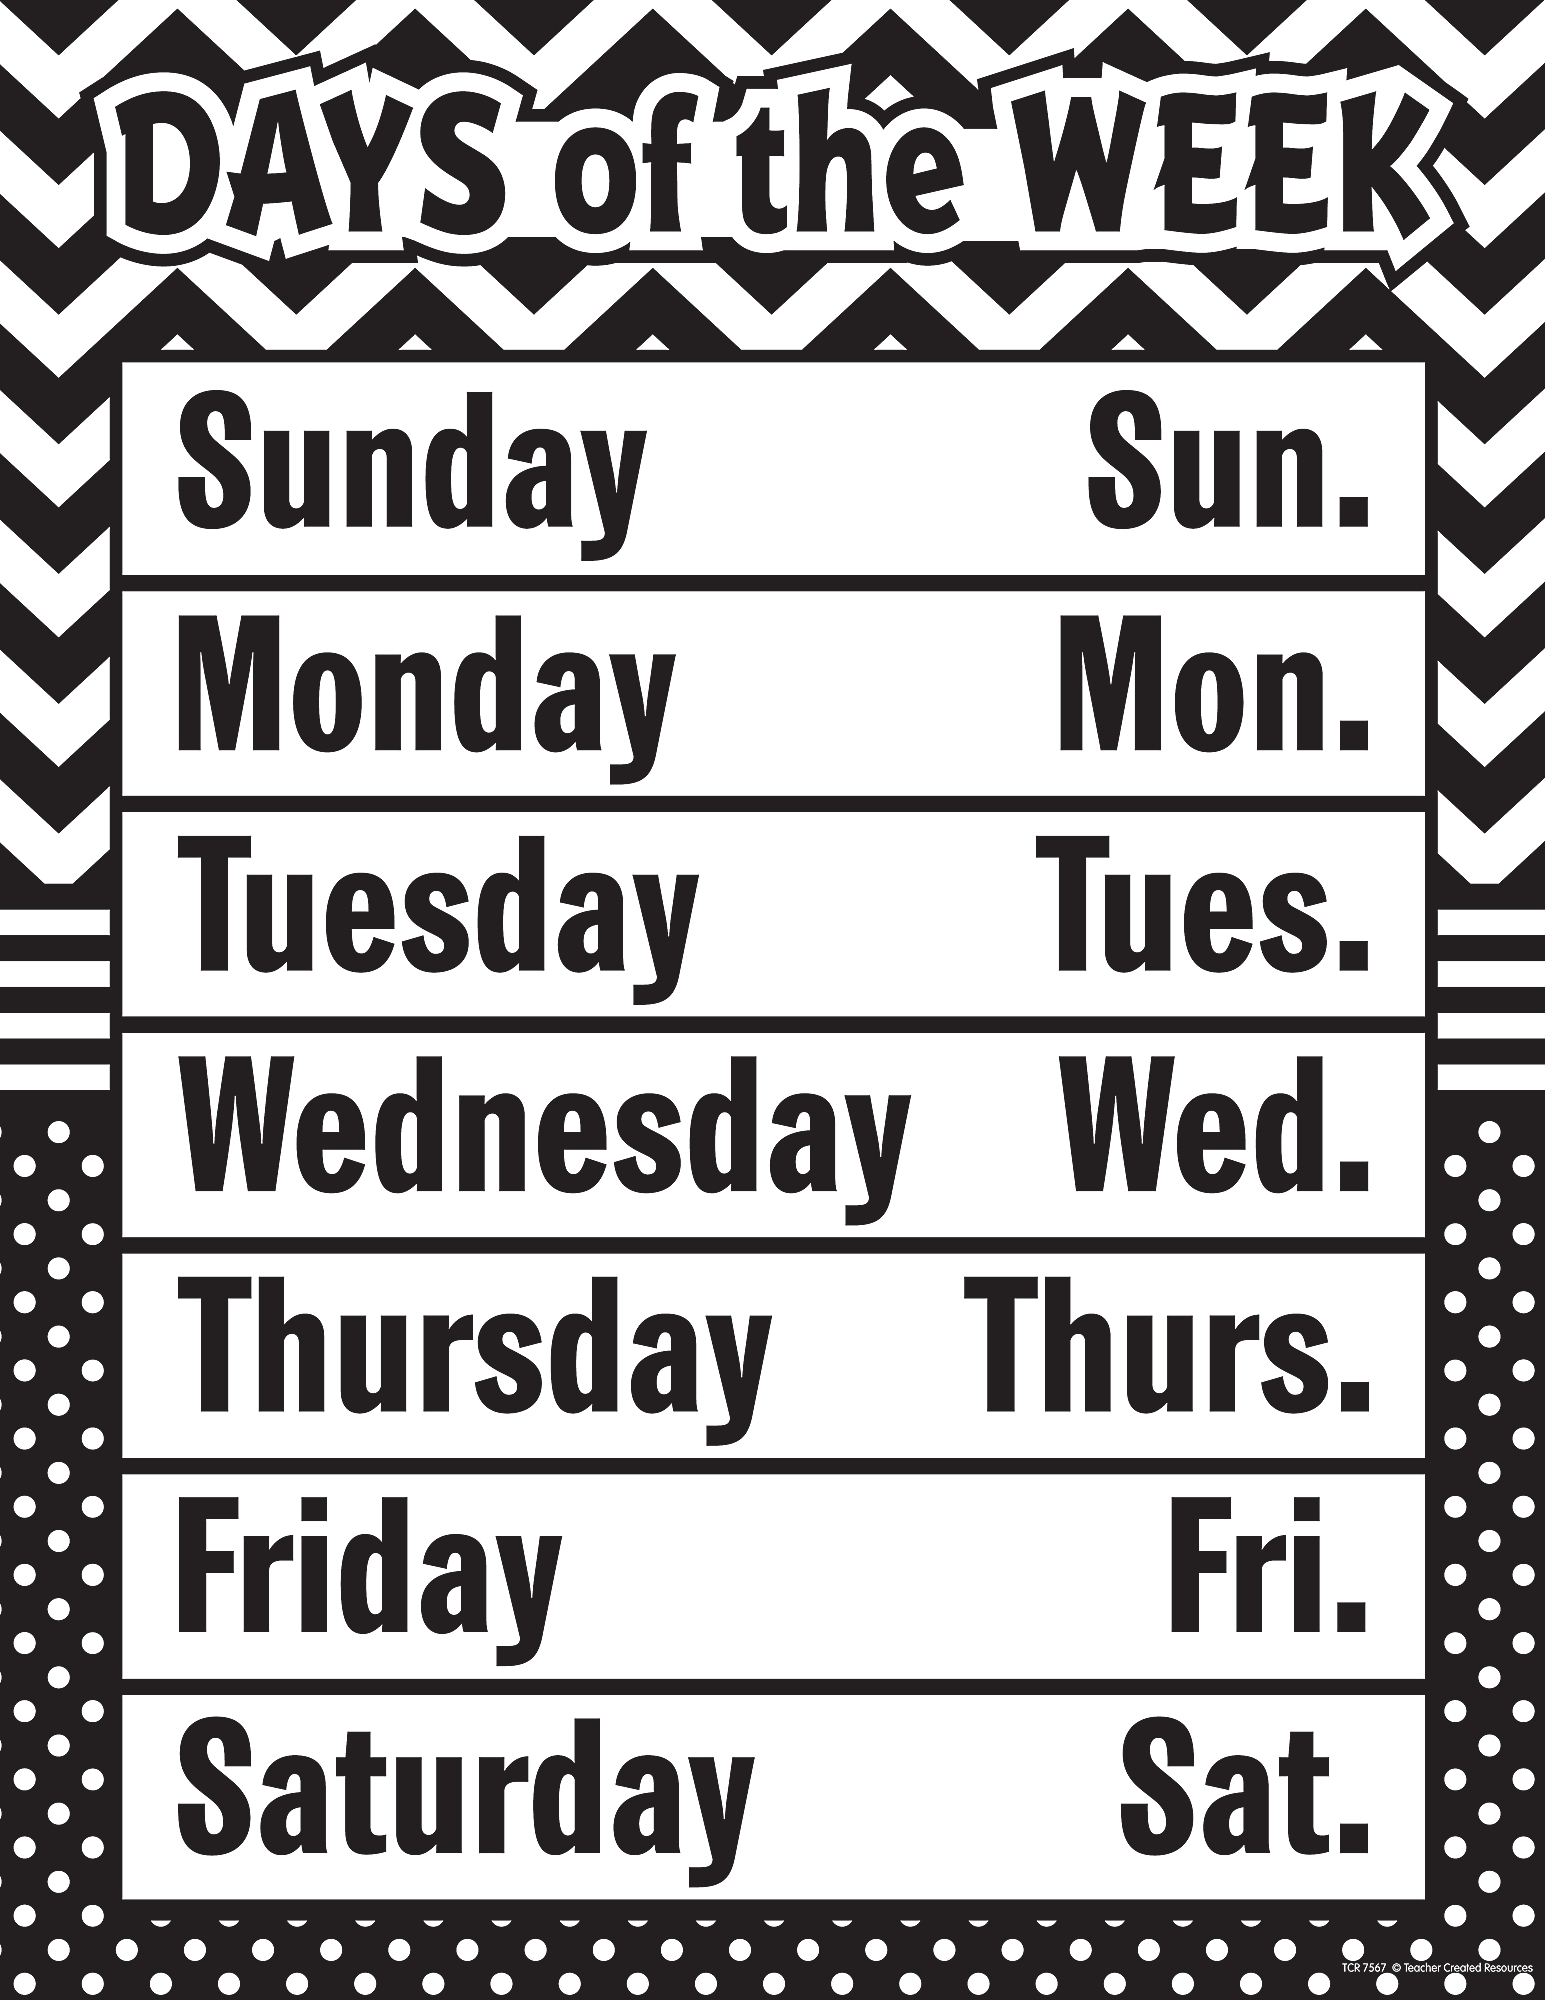 Black & White Chevron And Dots Days Of The Week Chart - Tcr7567 | Teacher Created Resources